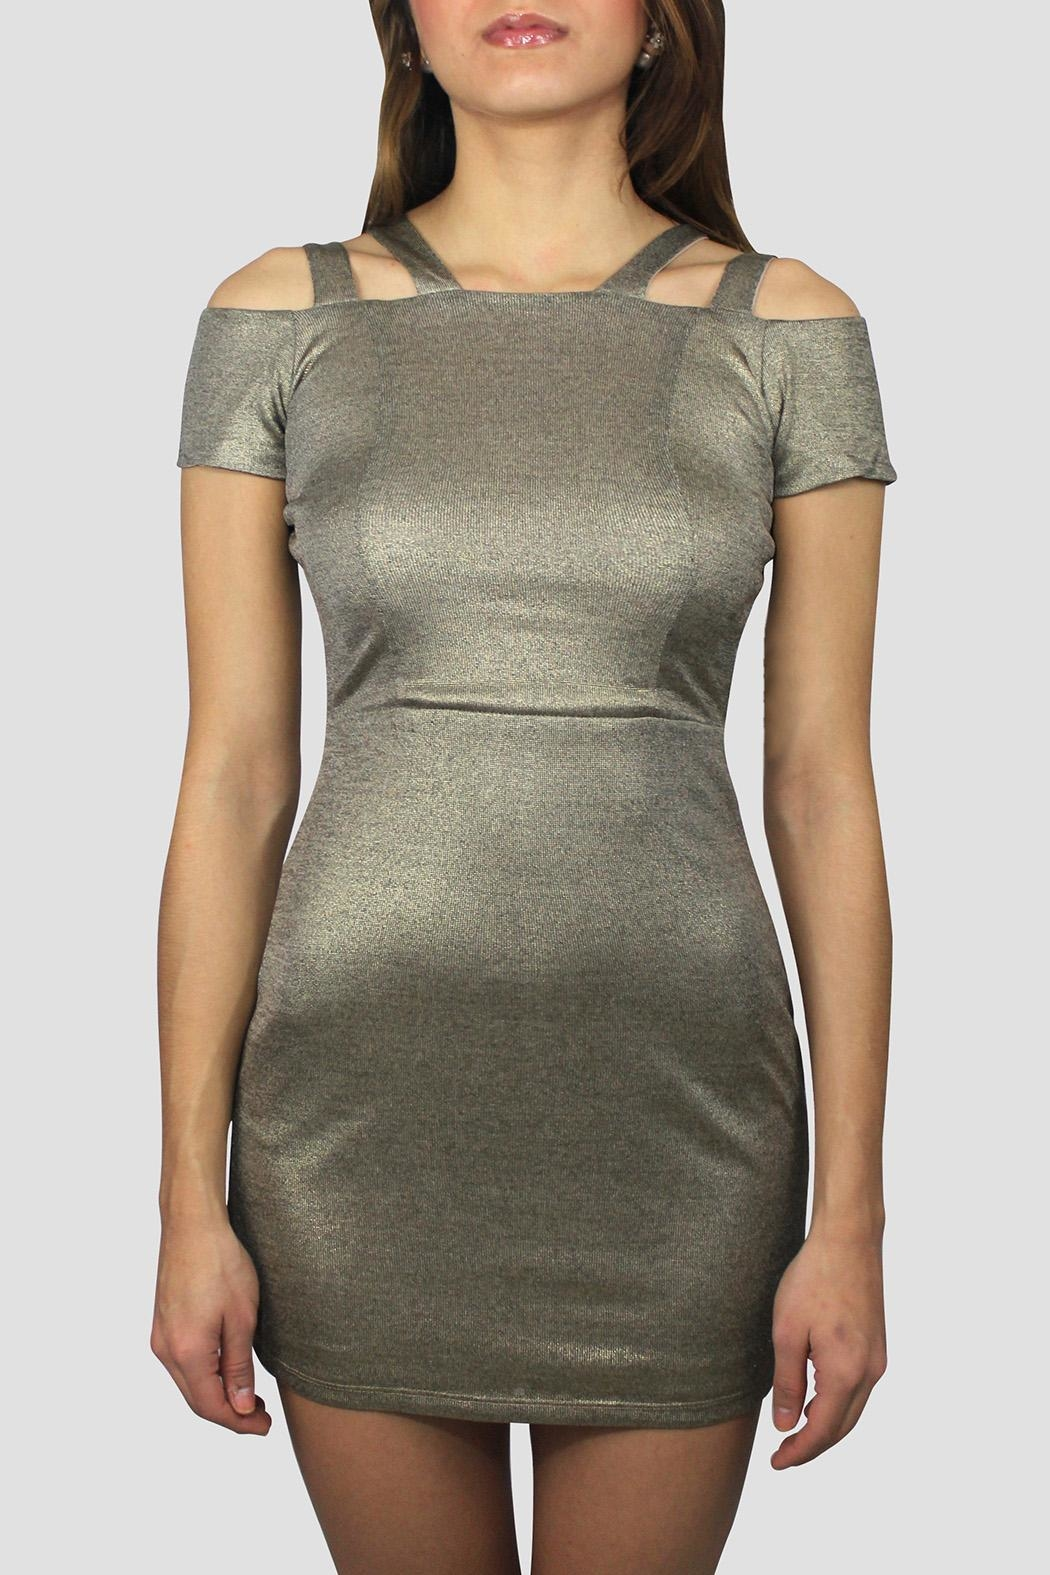 SoZu Cutout Shoulders Dress - Front Cropped Image